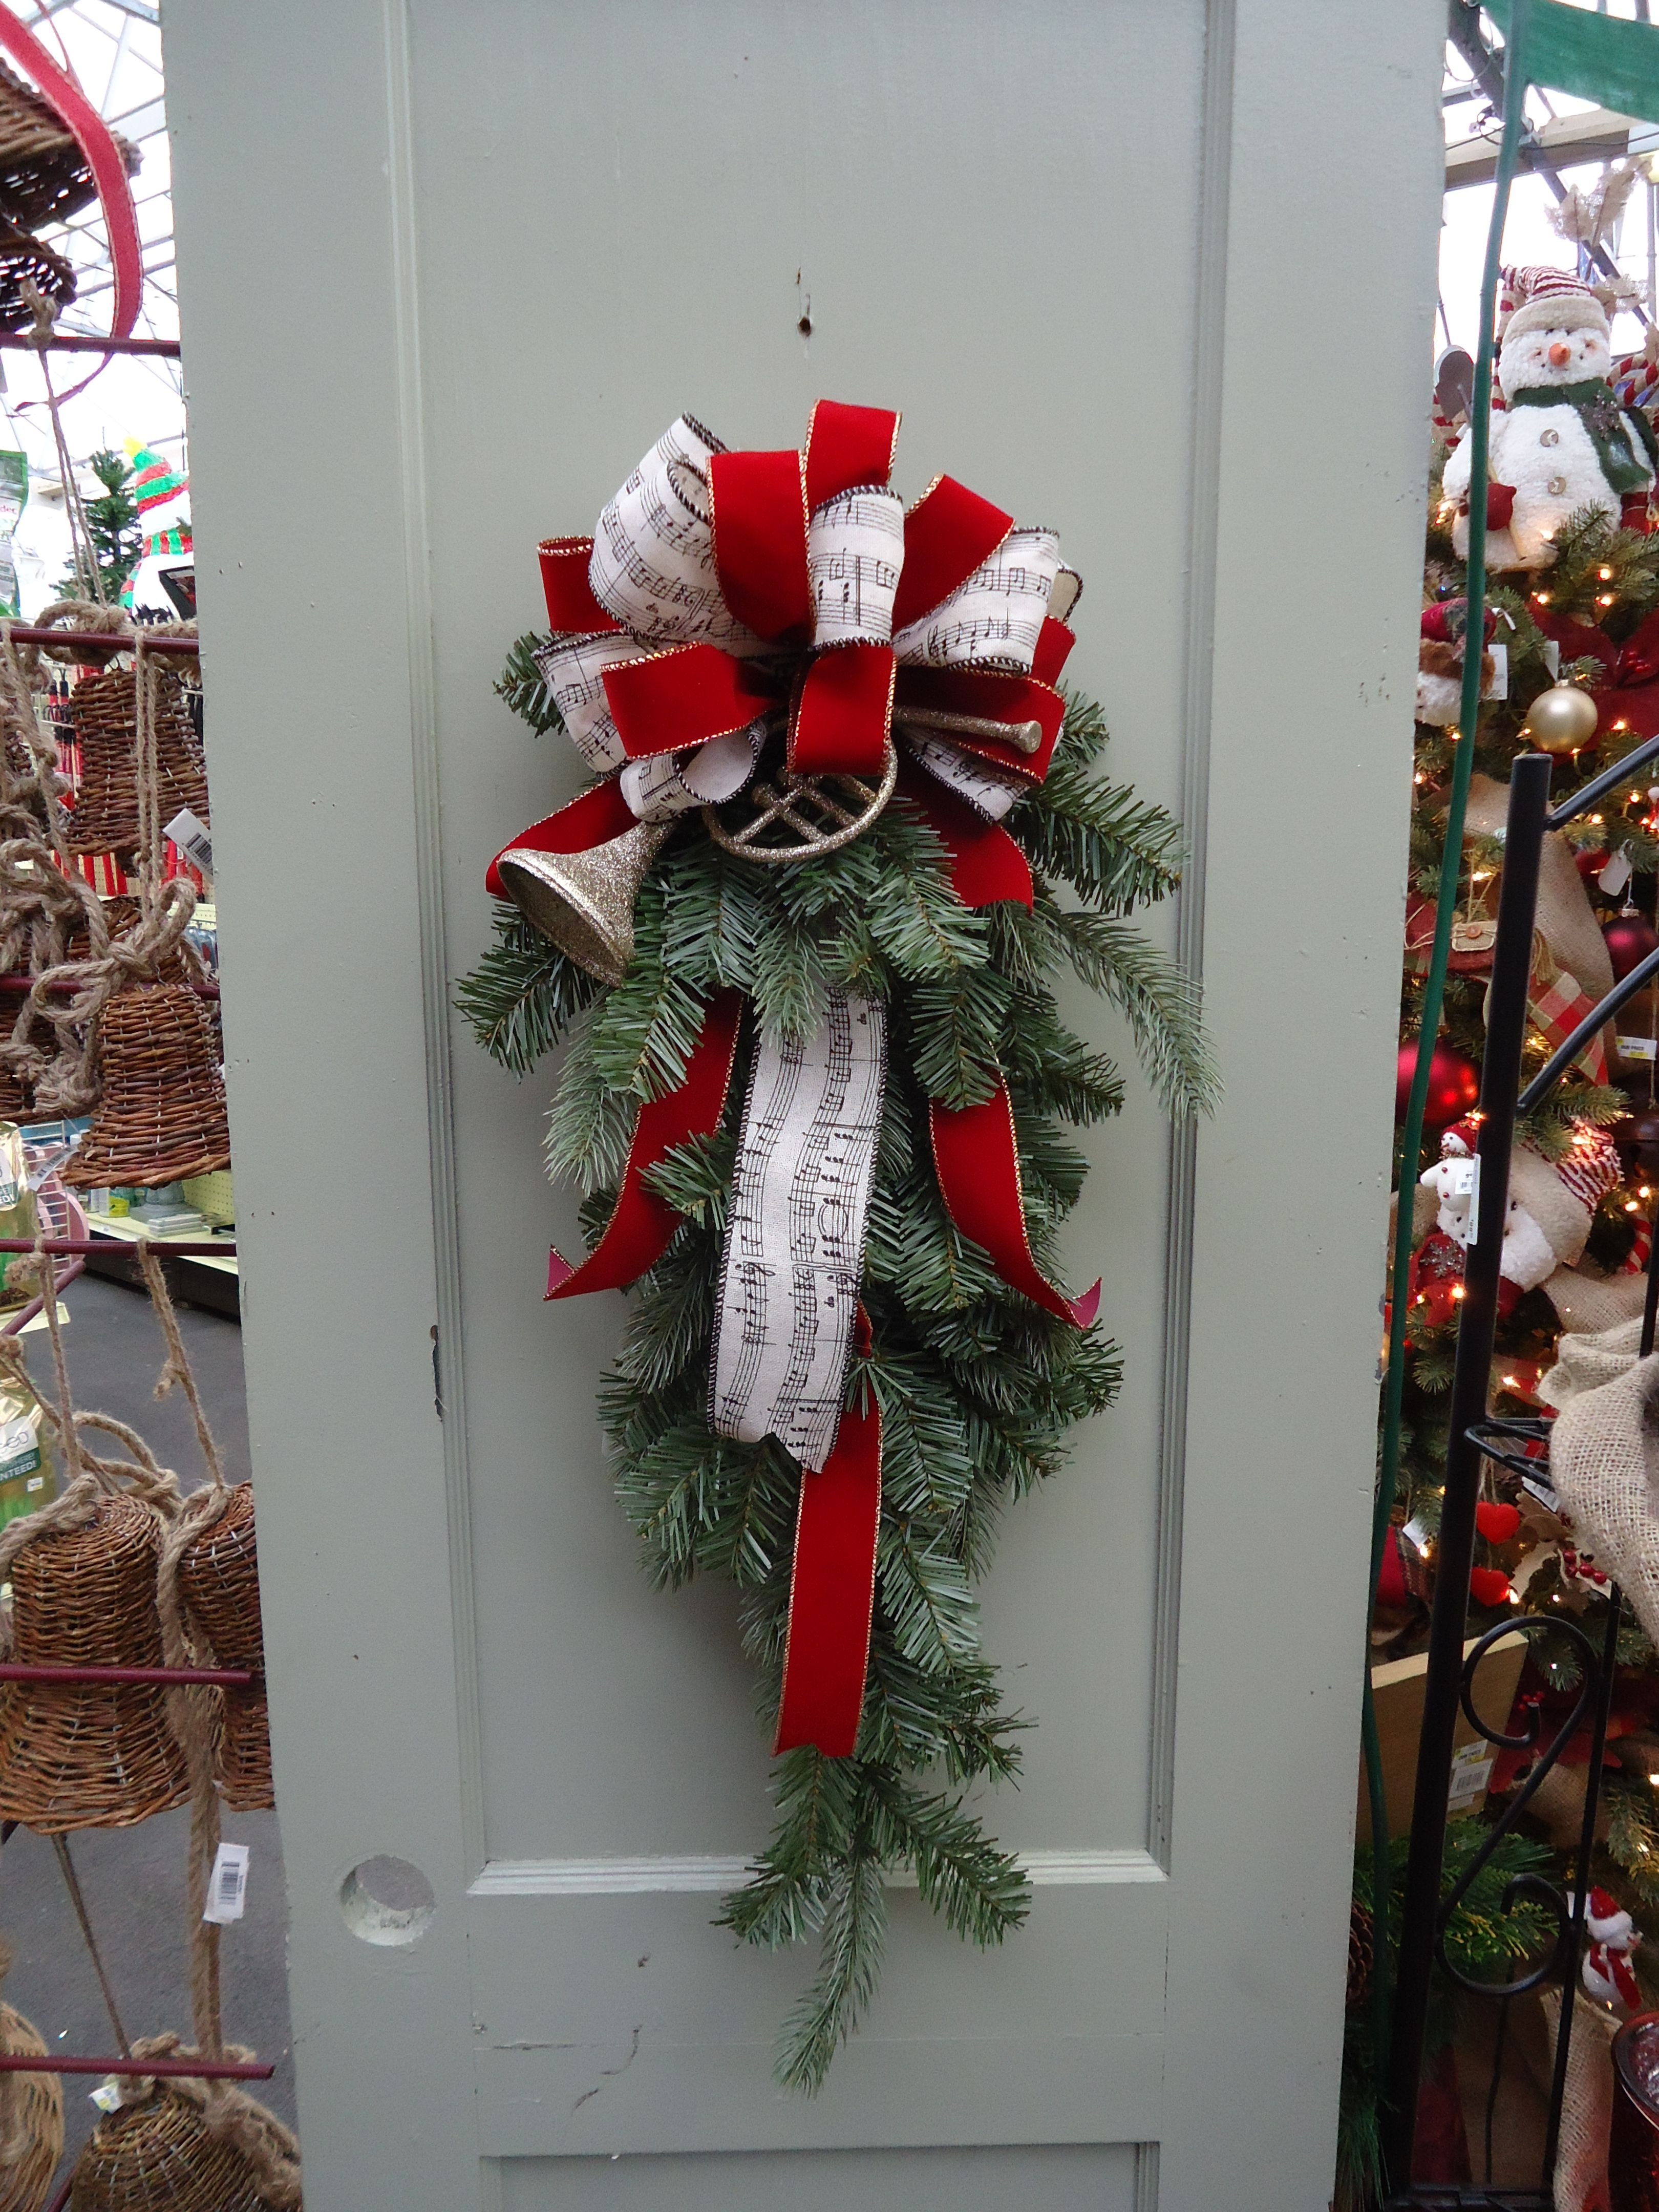 An artificial green #Christmas bow front door #wreath alternative from our Note Worthy theme at Stauffers #Hummelstown Home & Garden Store.